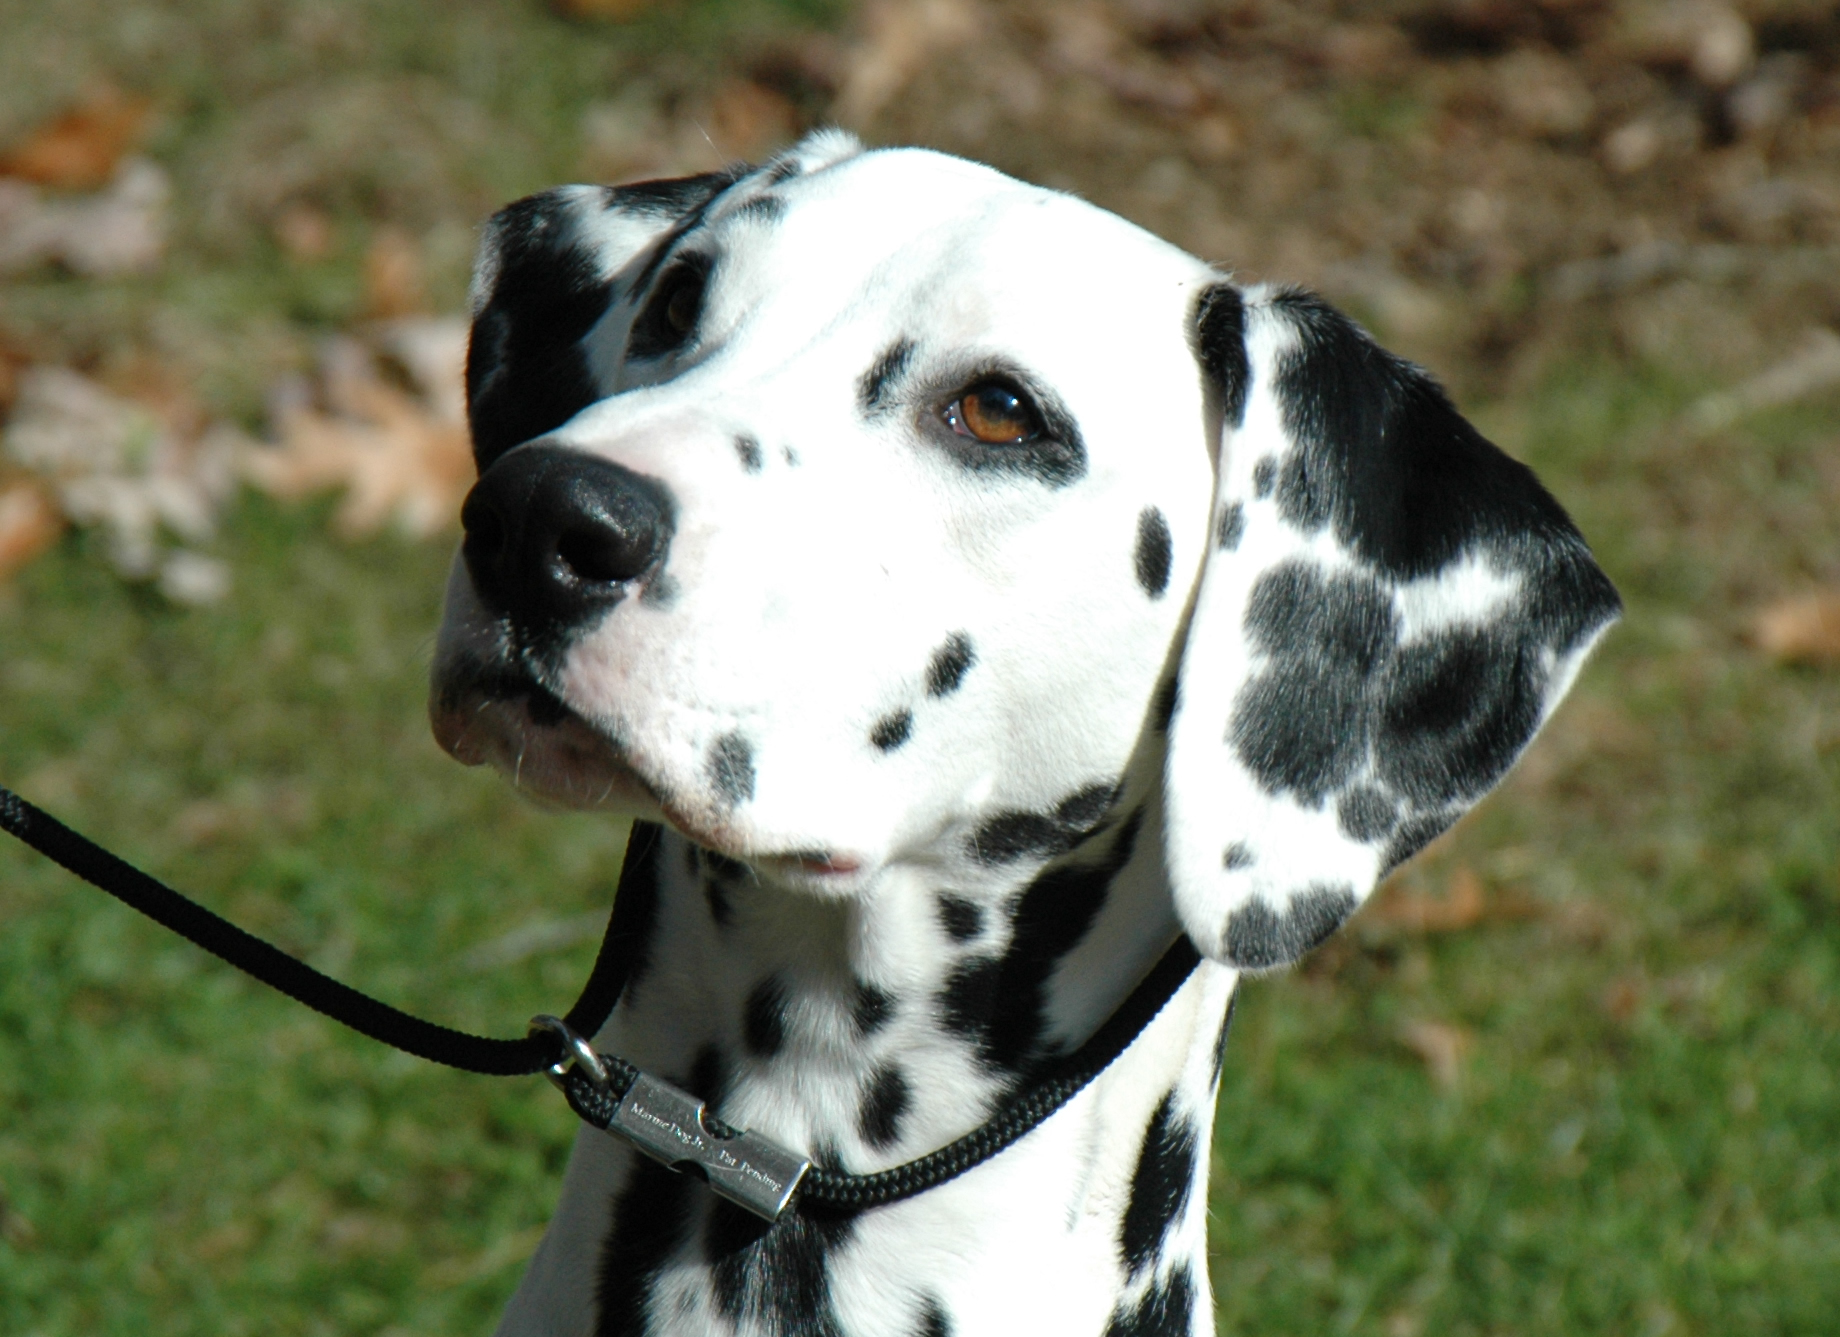 File:Female dalmatian head shot.jpg - Wikimedia Commons